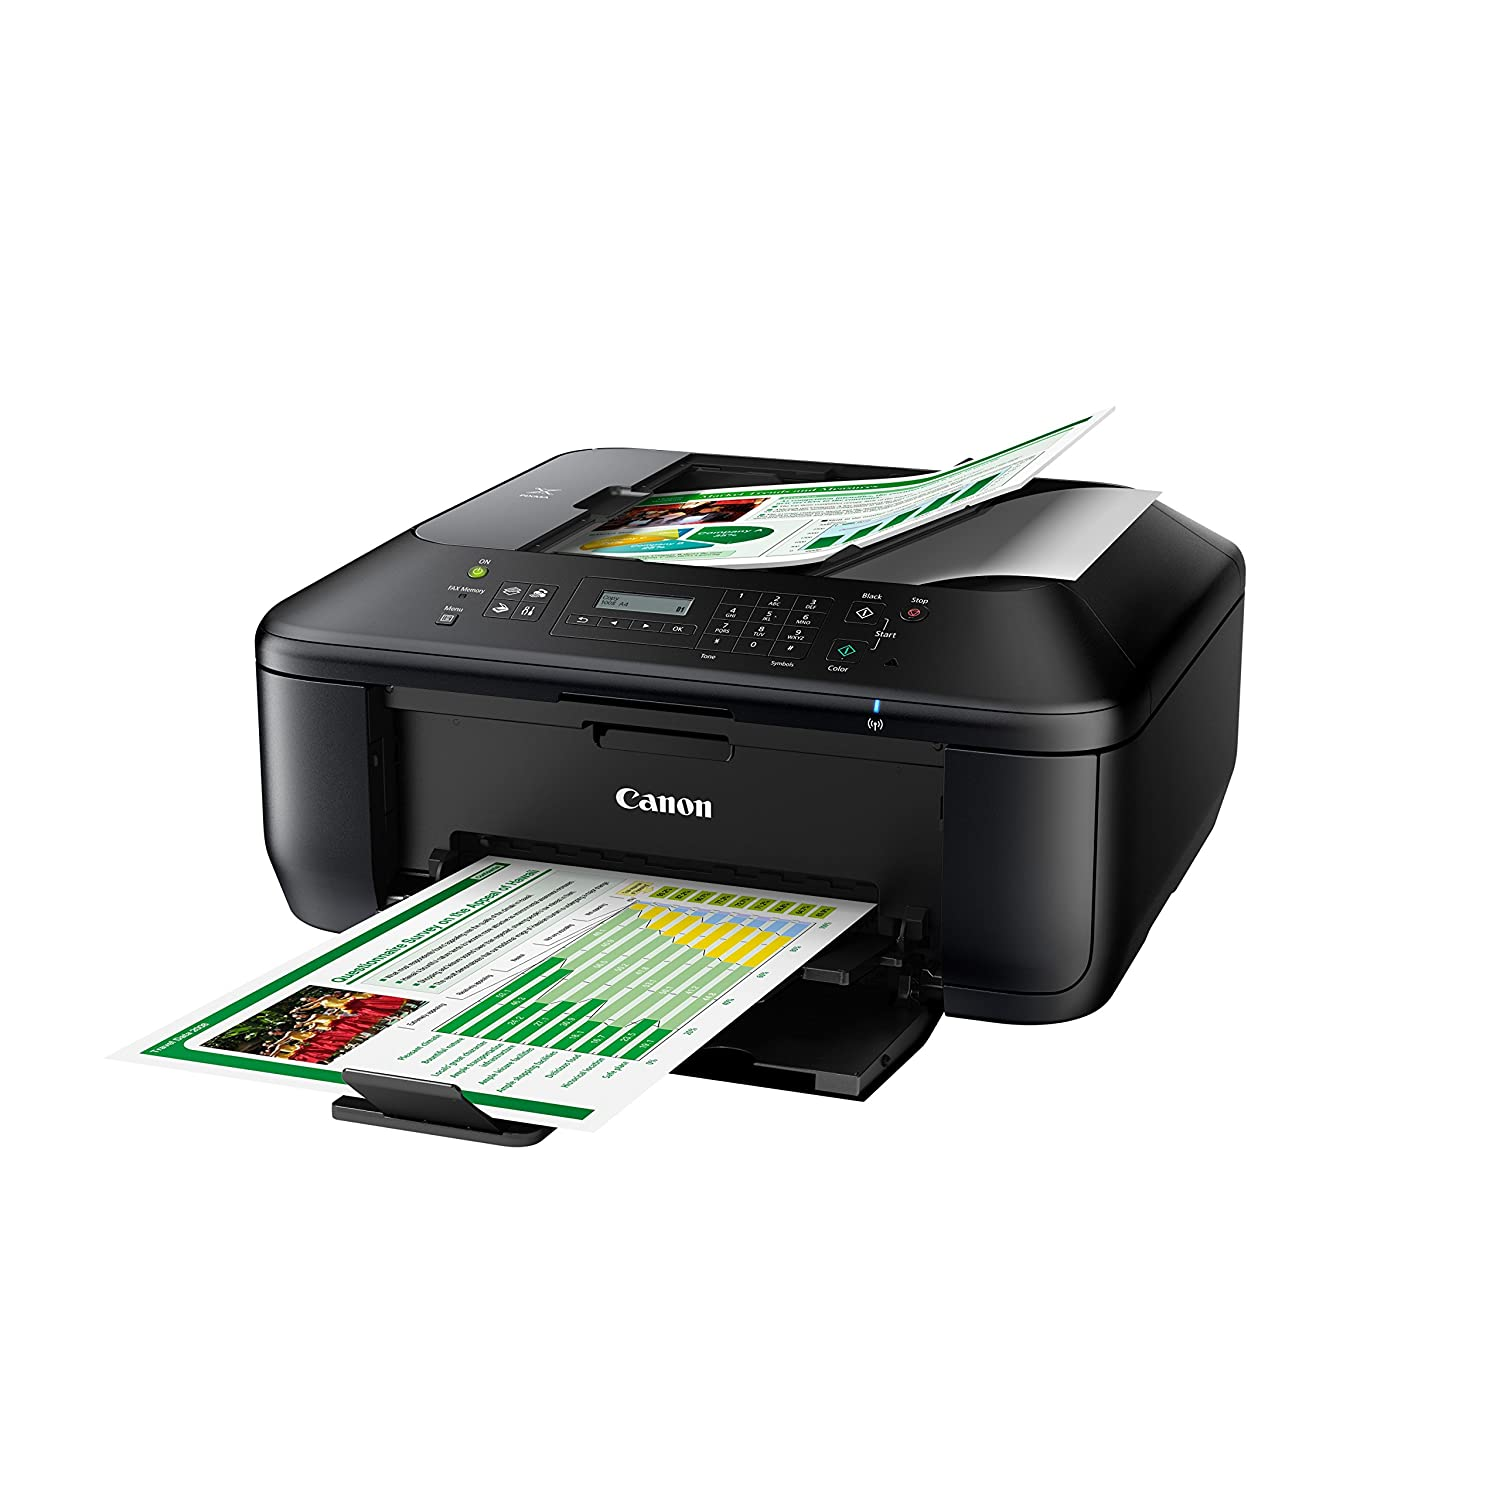 CANON MX338 SCANNER DRIVERS FOR MAC DOWNLOAD